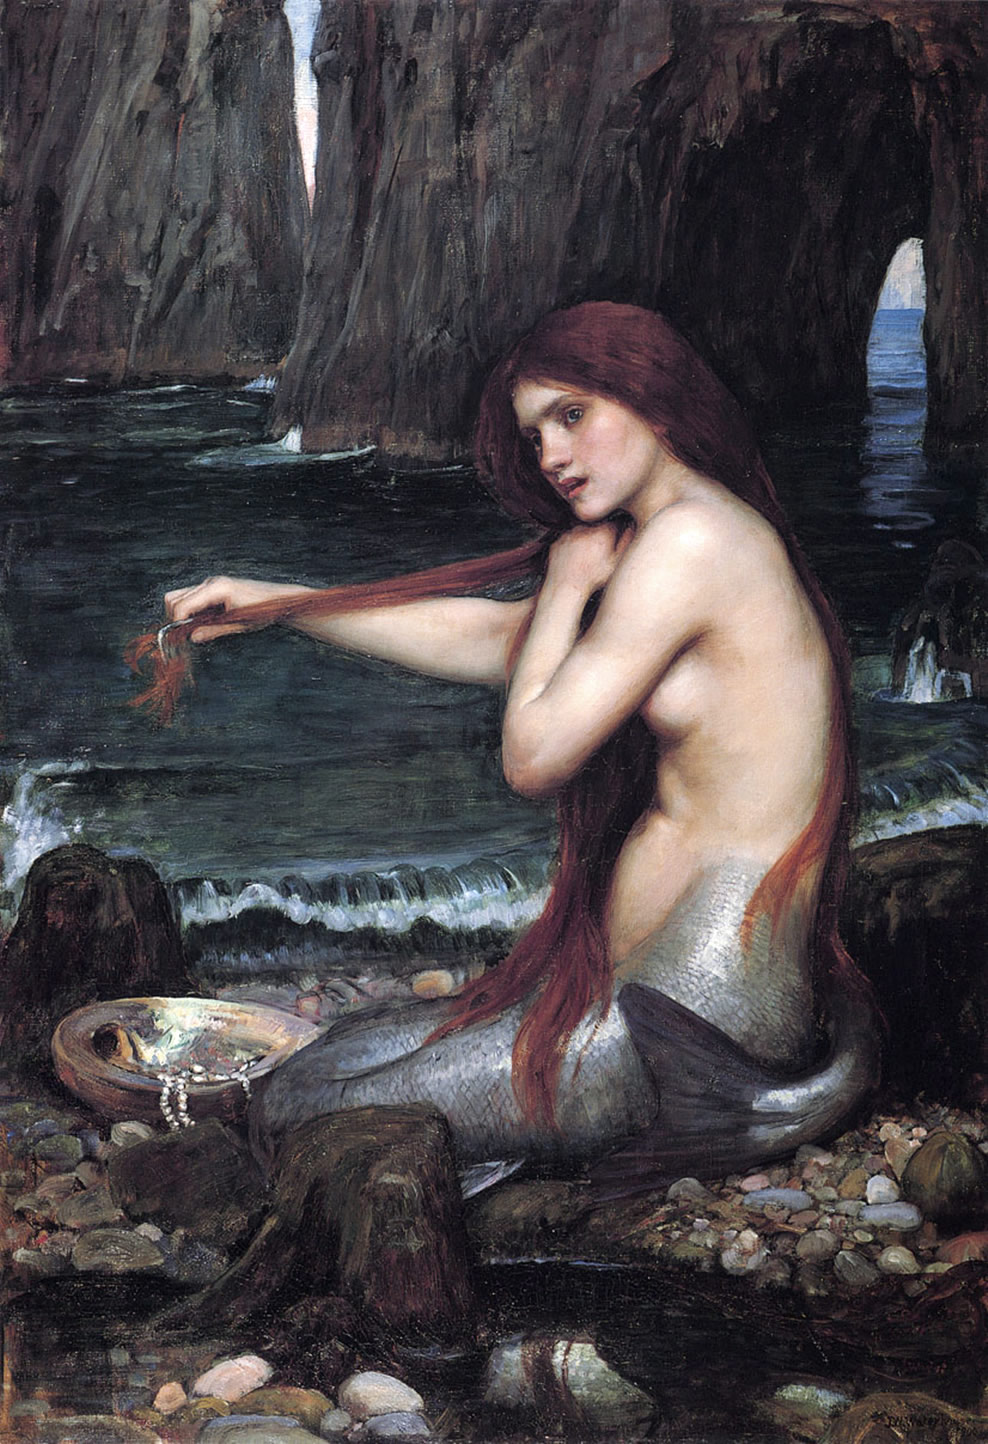 Image:Waterhouse a mermaid.jpg